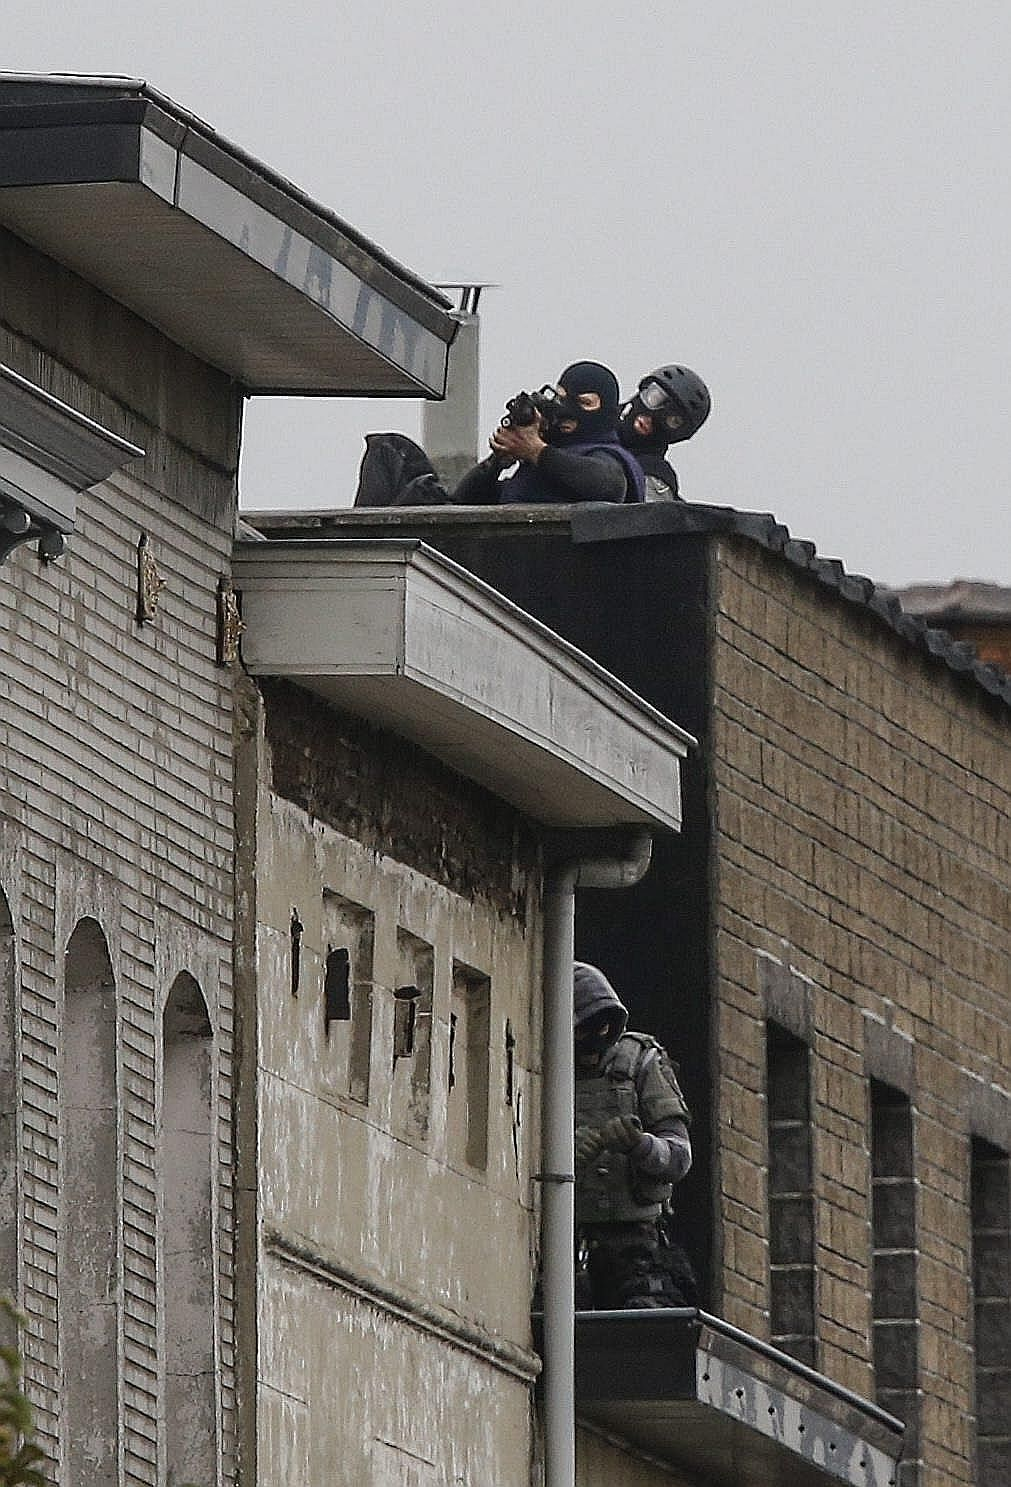 Snipers in Rue Delaunoy in Molenbeek in Brussels, Belgium, yesterday, where the manhunt for the terror suspects has widened to.